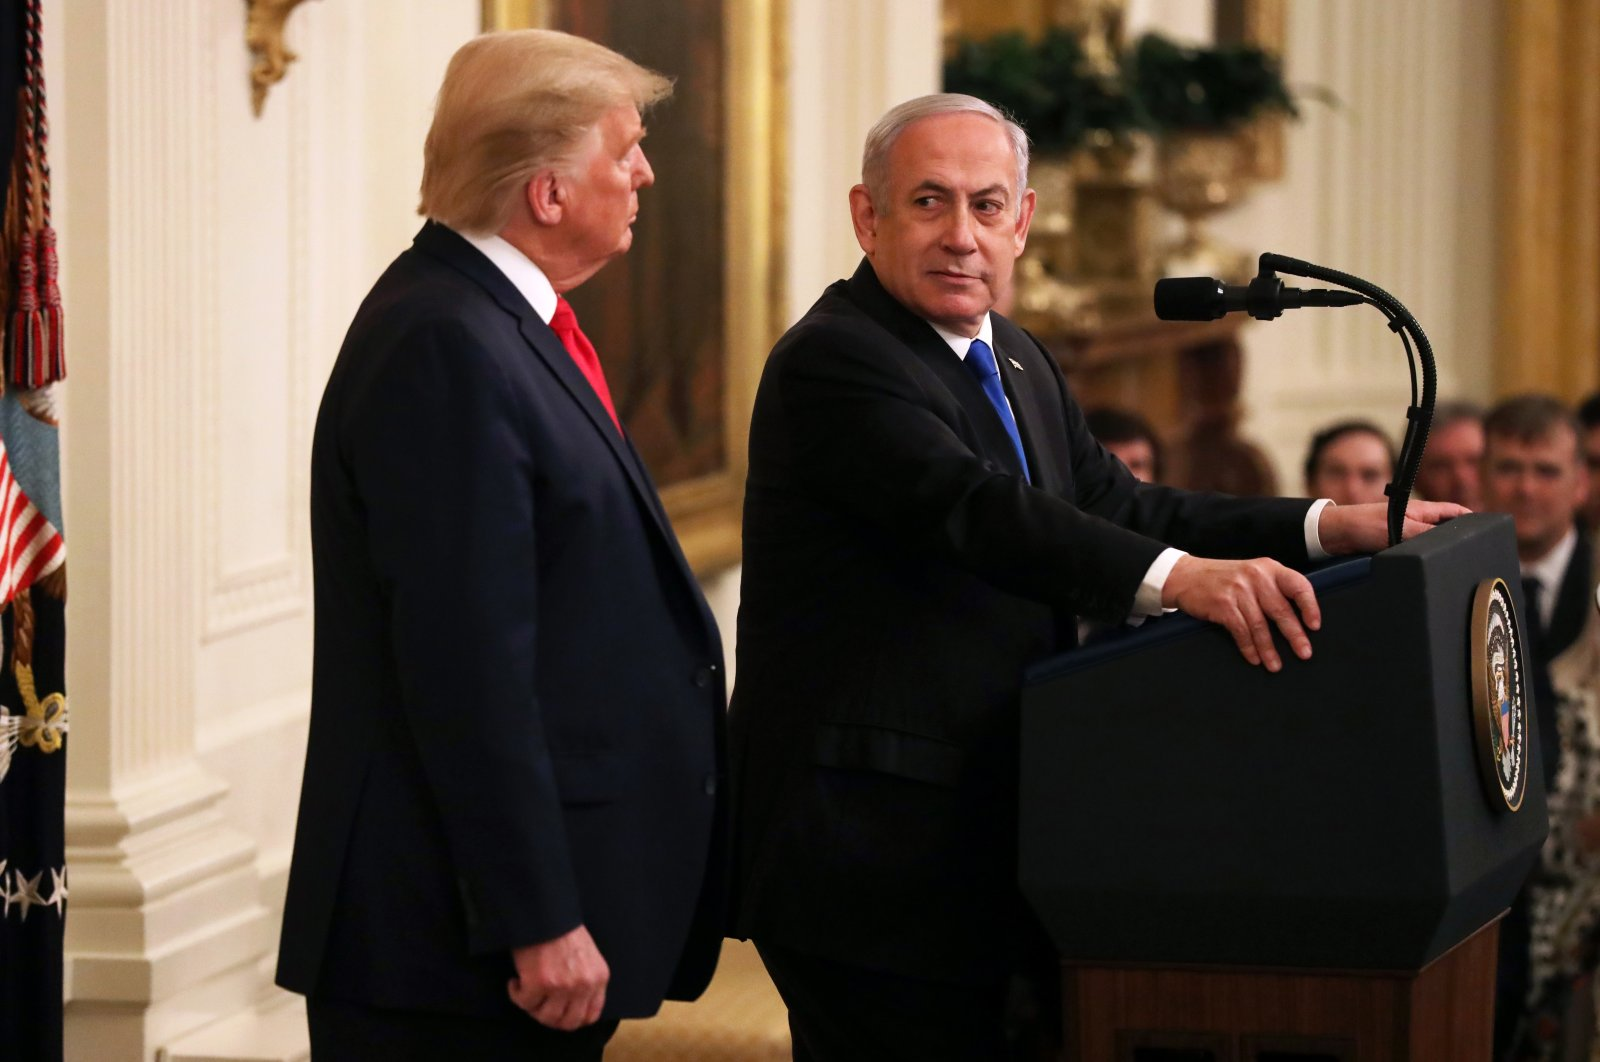 Israeli Prime Minister Benjamin Netanyahu (R) and U.S. President Donald Trump speak during a press conference, at the White House, Washington, D.C., U.S., Jan. 28, 2020. (Photo by Getty Images)